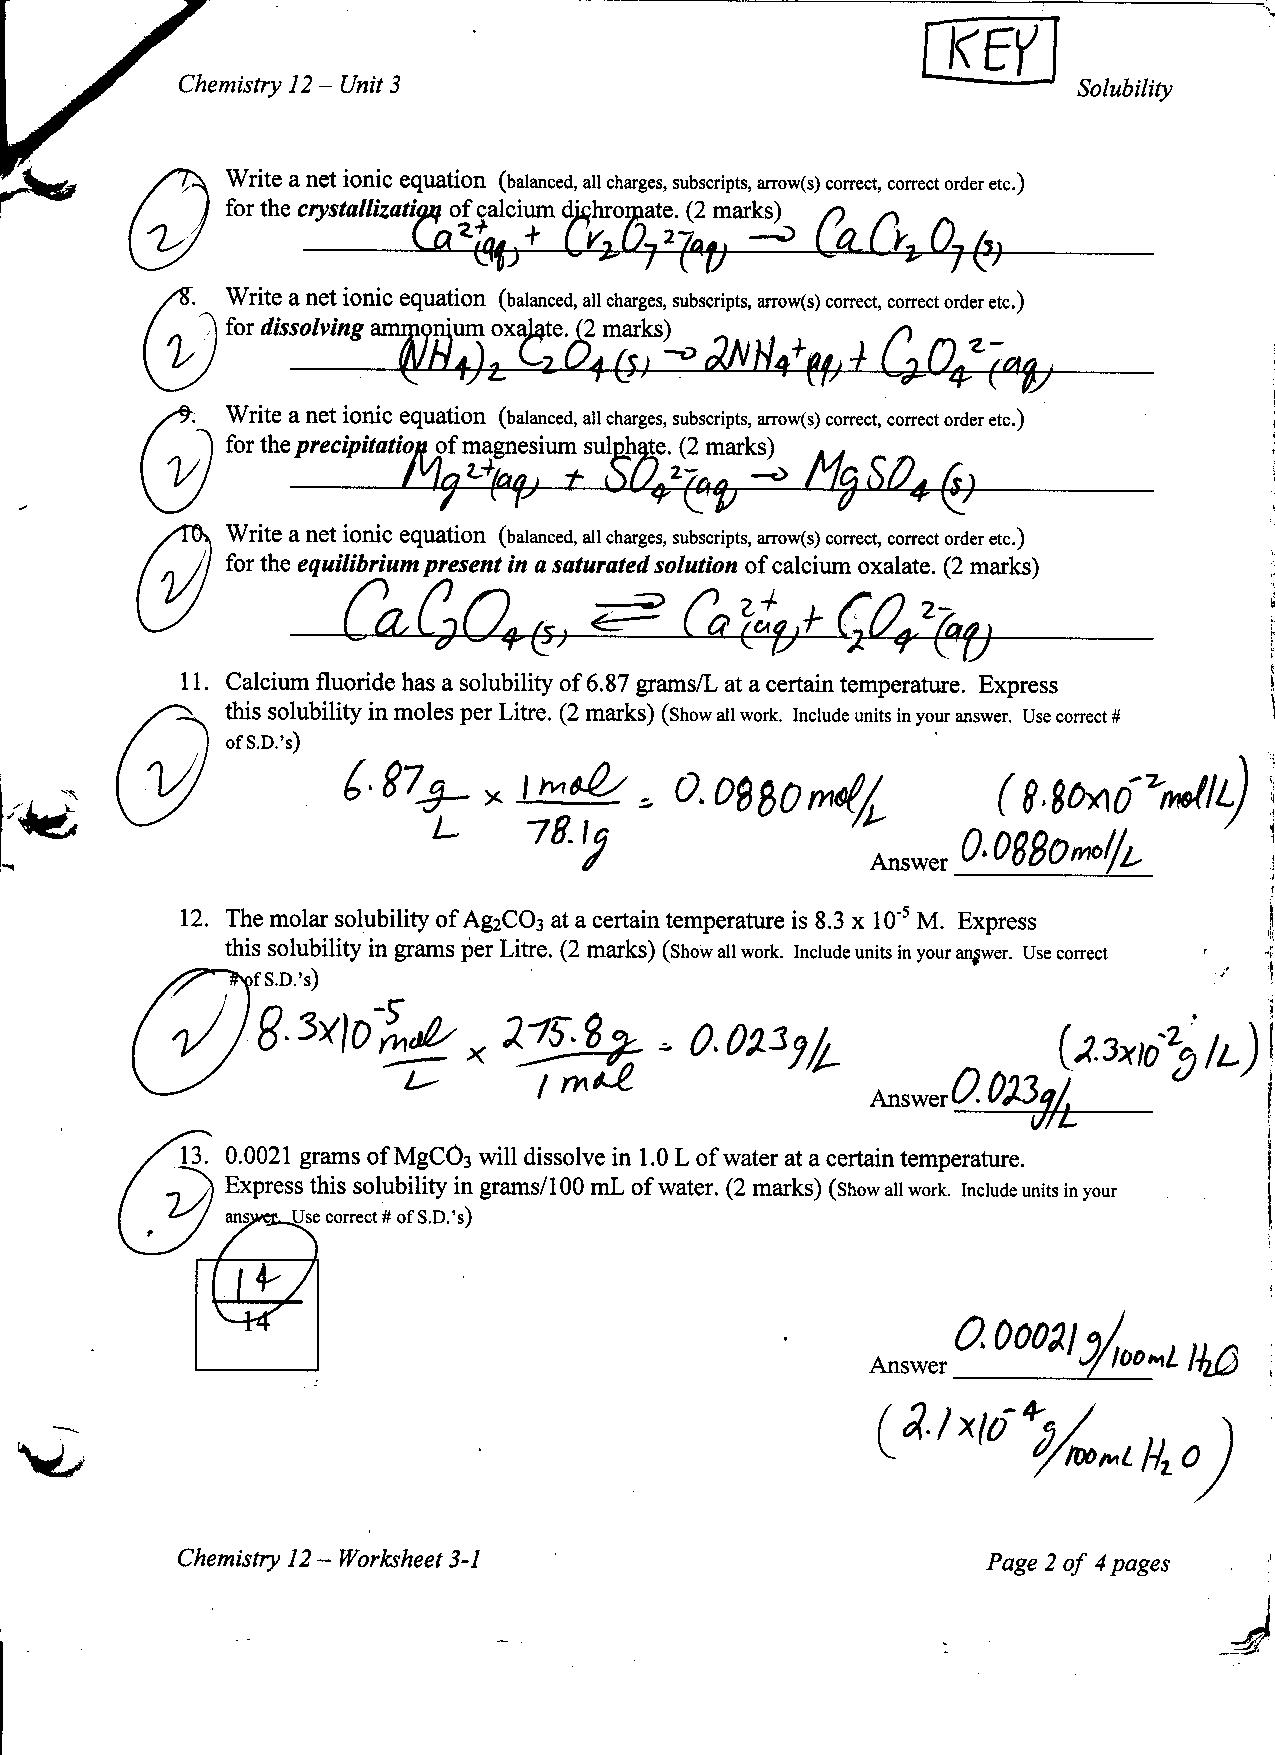 26 Chemistry Review Worksheet Answer Key